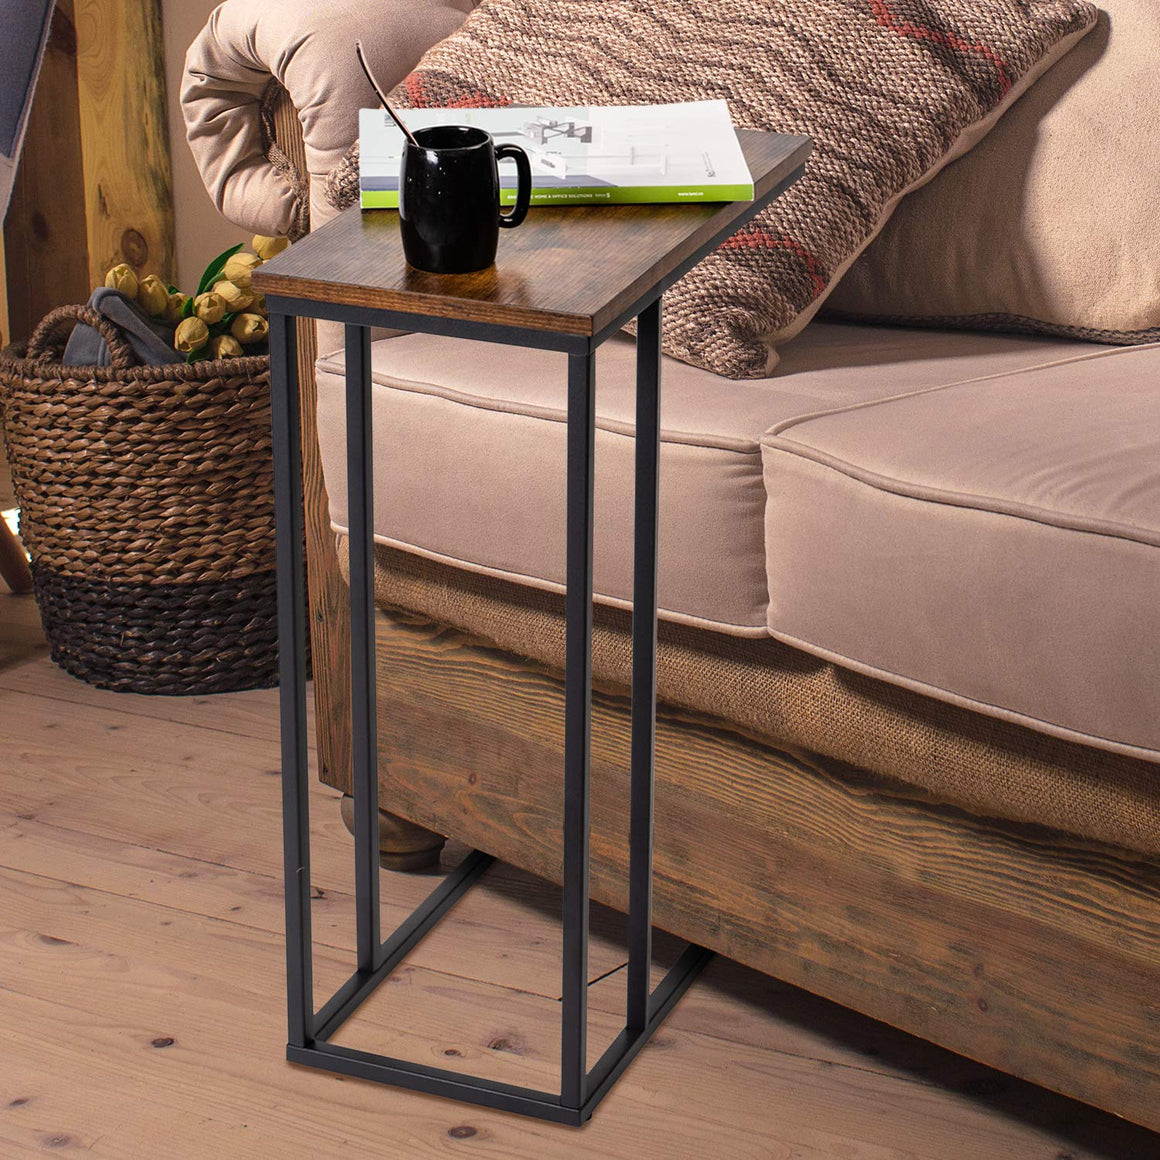 C Side End Table With Storage and Sturdy Metal Frame